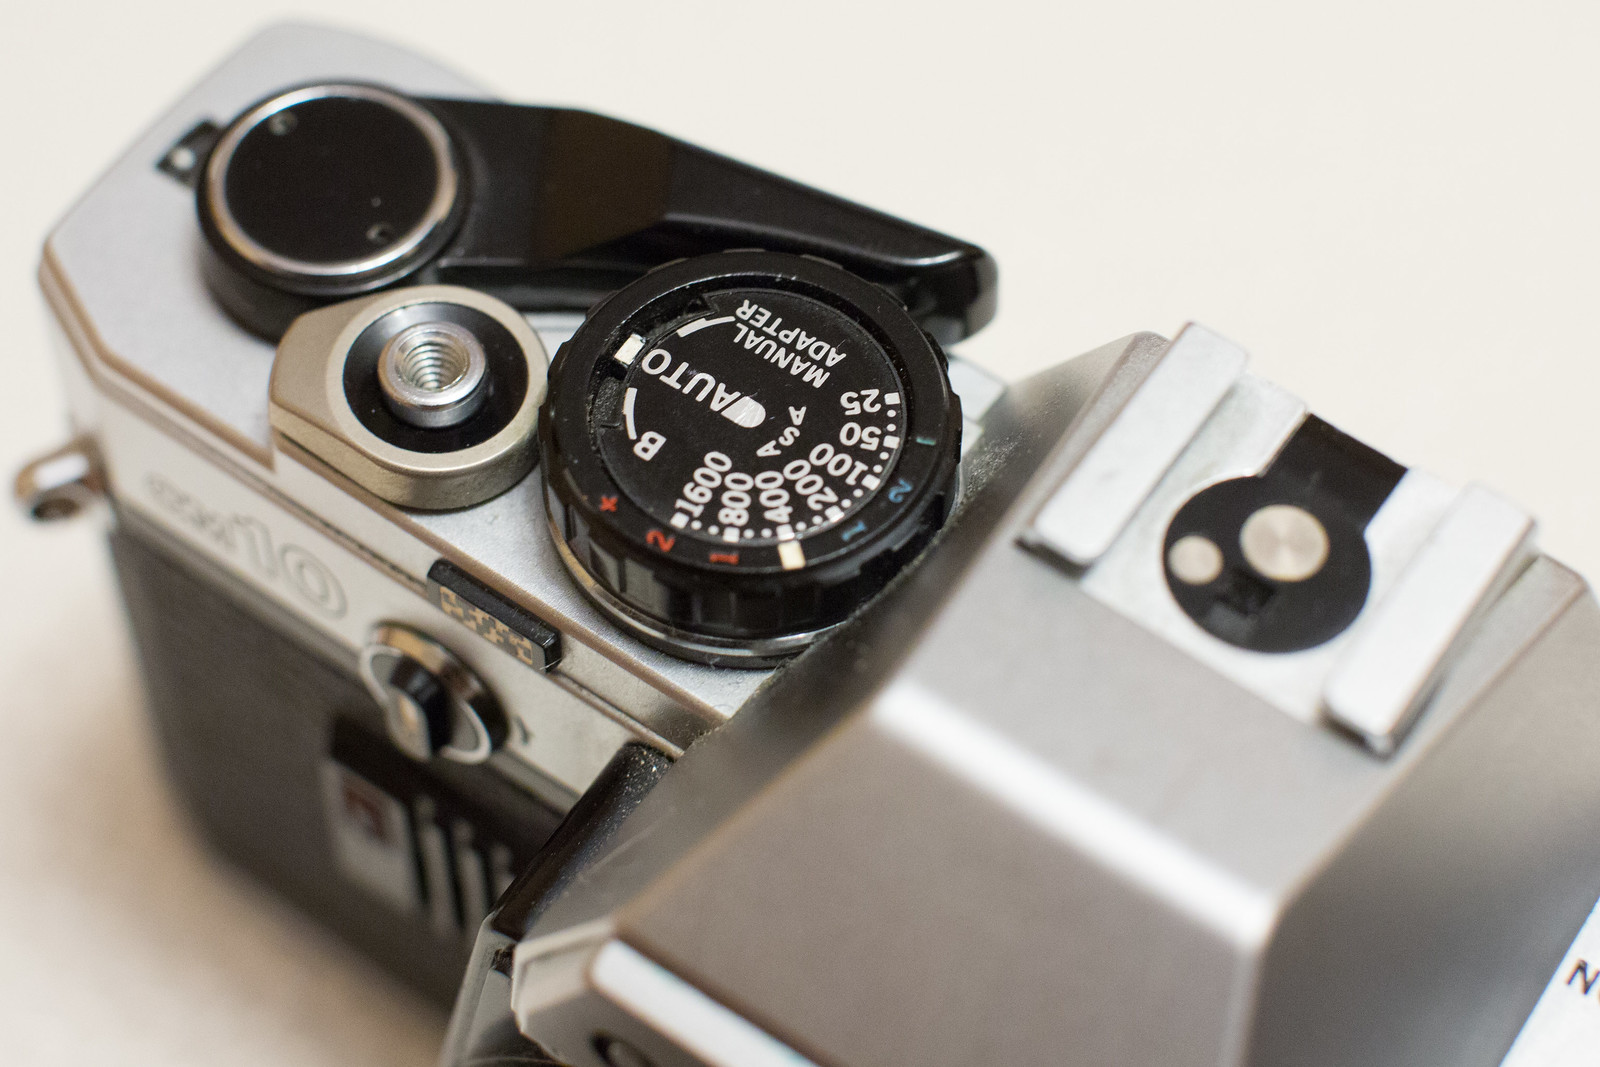 exposure compensation in manual mode